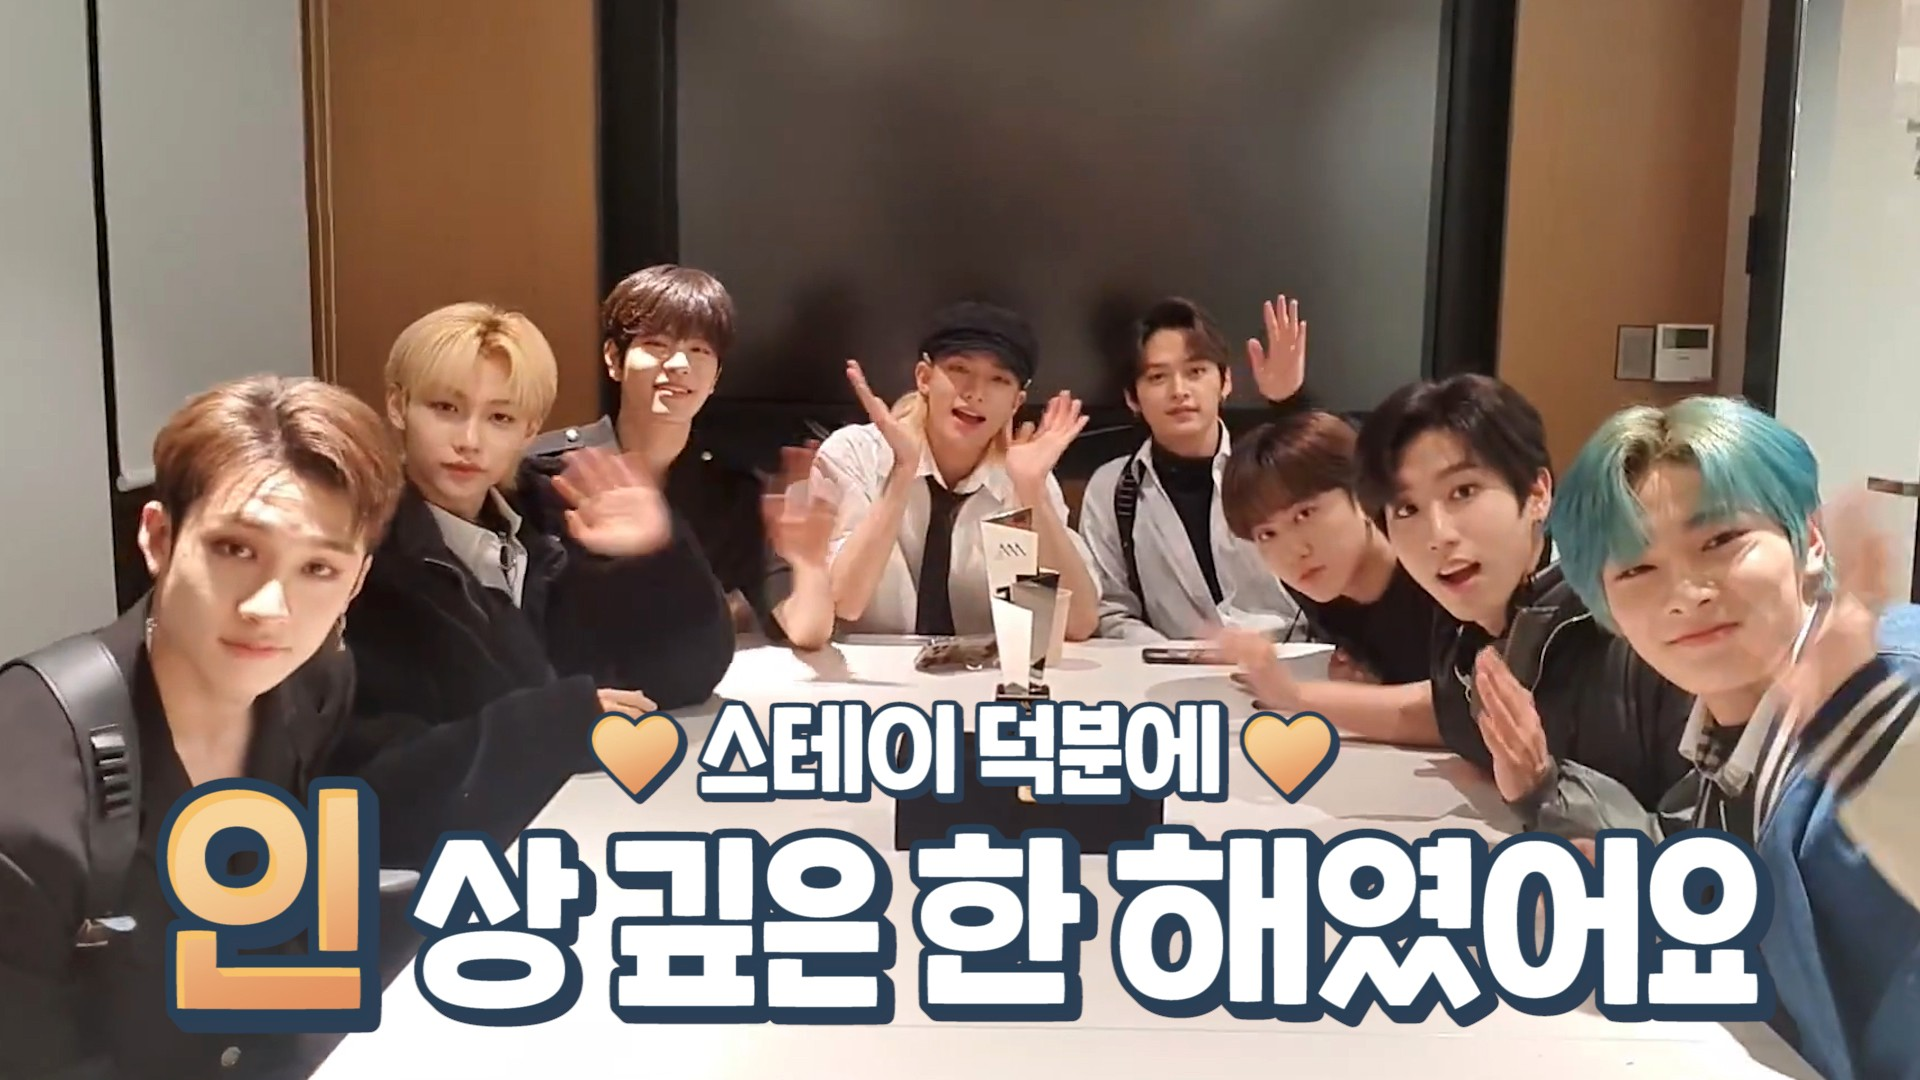 [Stray Kids] 스키즈에 ALL IN 하고 평테이 다짐까지 뚝딱..💛💰 (Stray Kids talking about 'All in' behind episode)